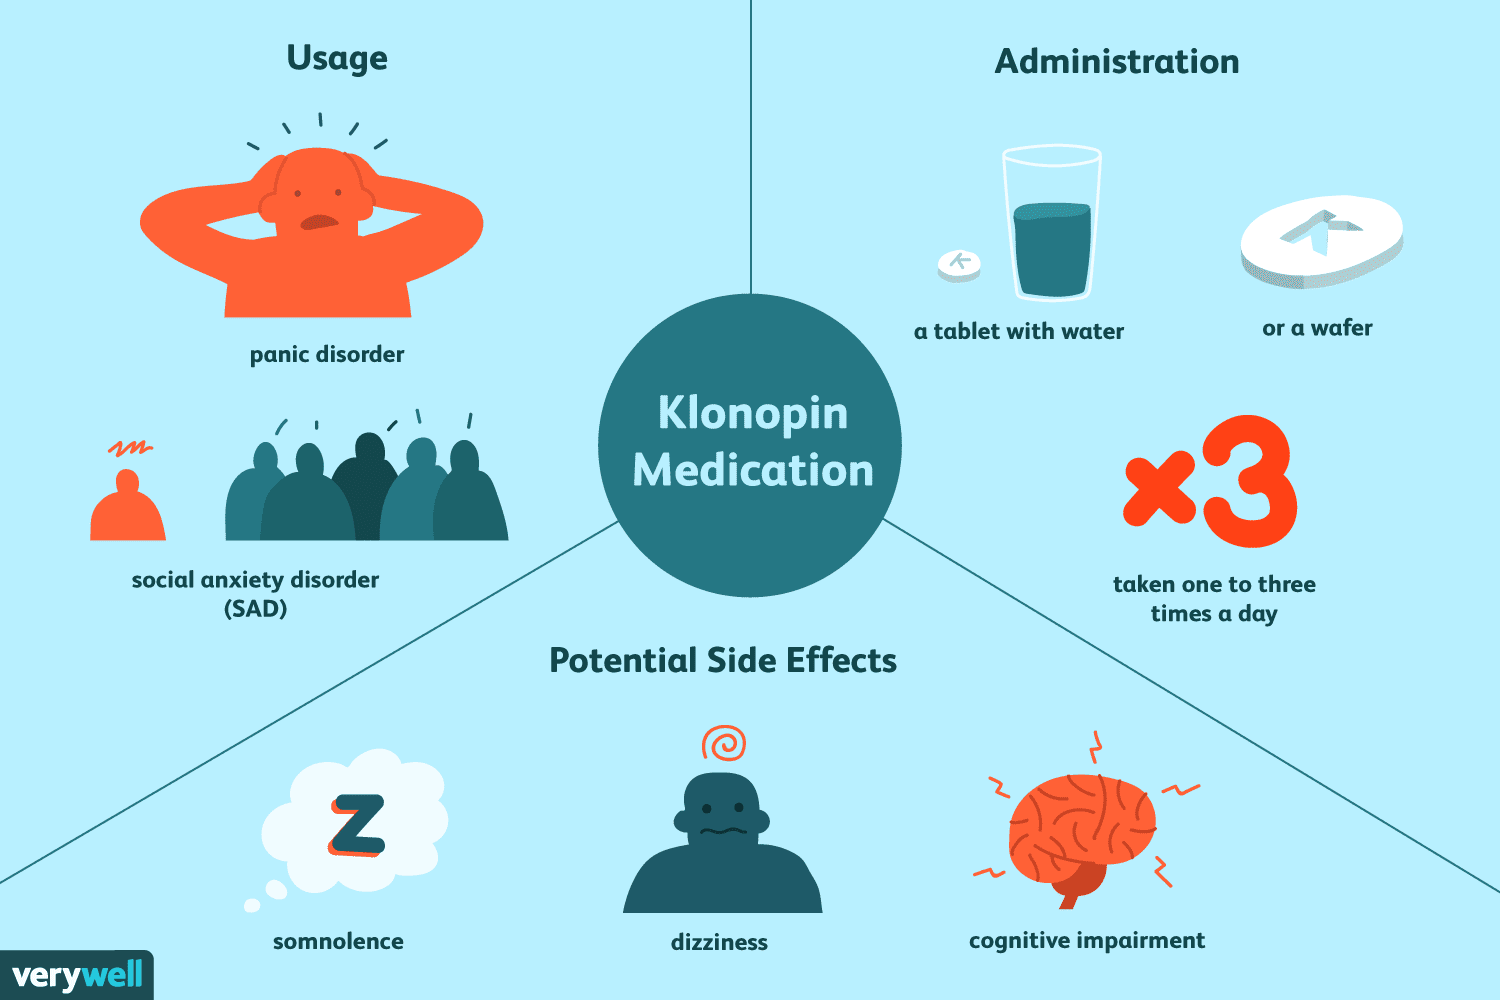 Klonopin for Social Anxiety: Dosage and Side Effects